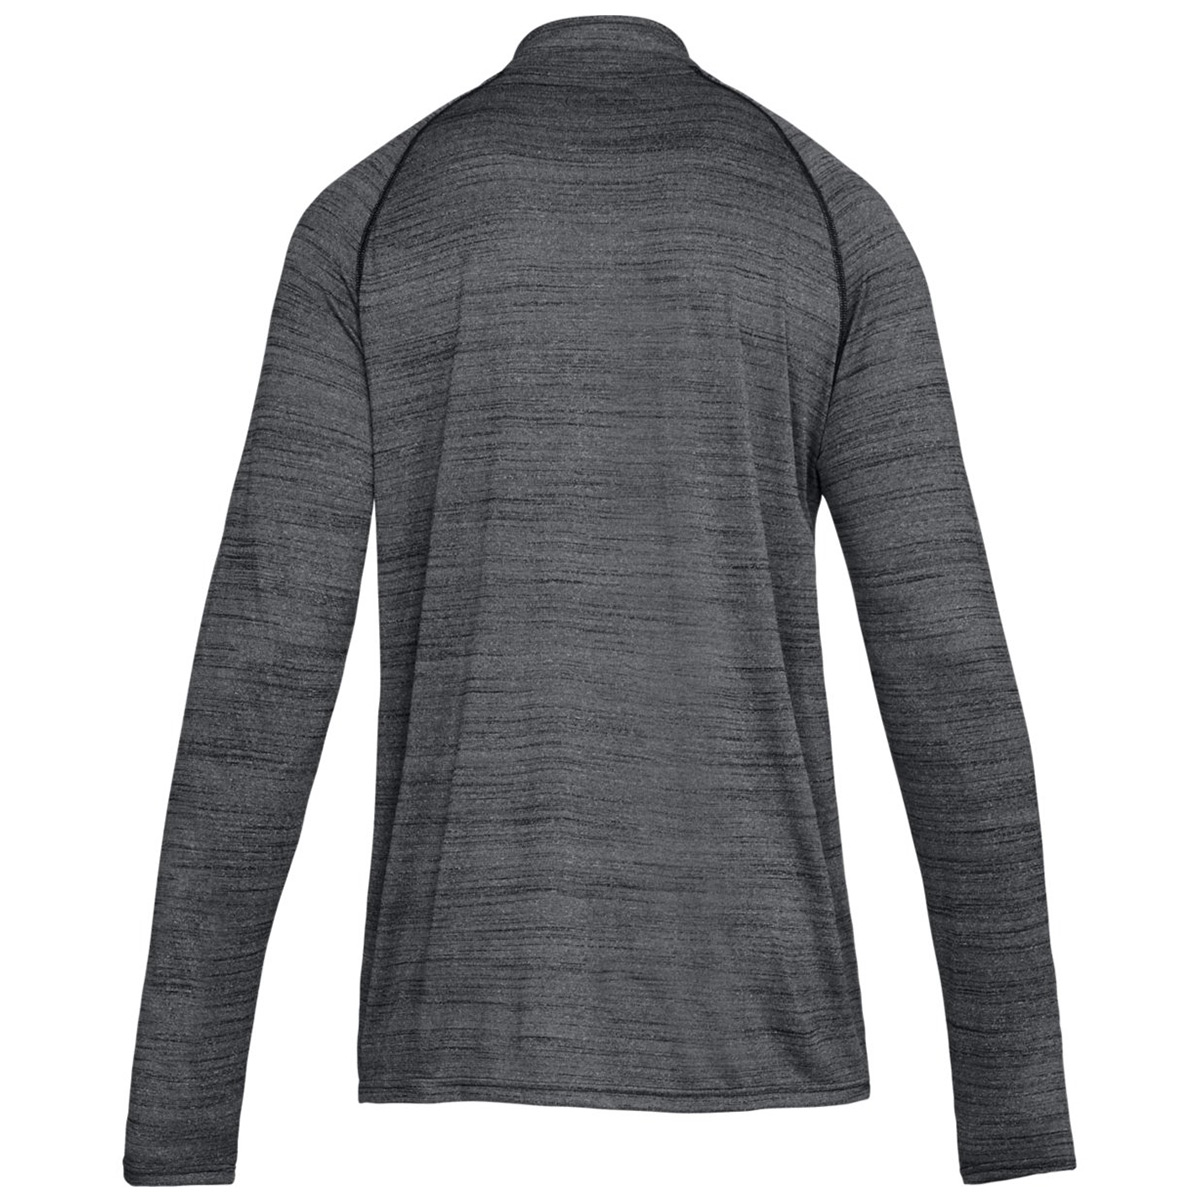 Under-Armour-Mens-UA-Tech-1-4-Zip-Long-Sleeve-Top-Workout-Layer-27-OFF-RRP thumbnail 25